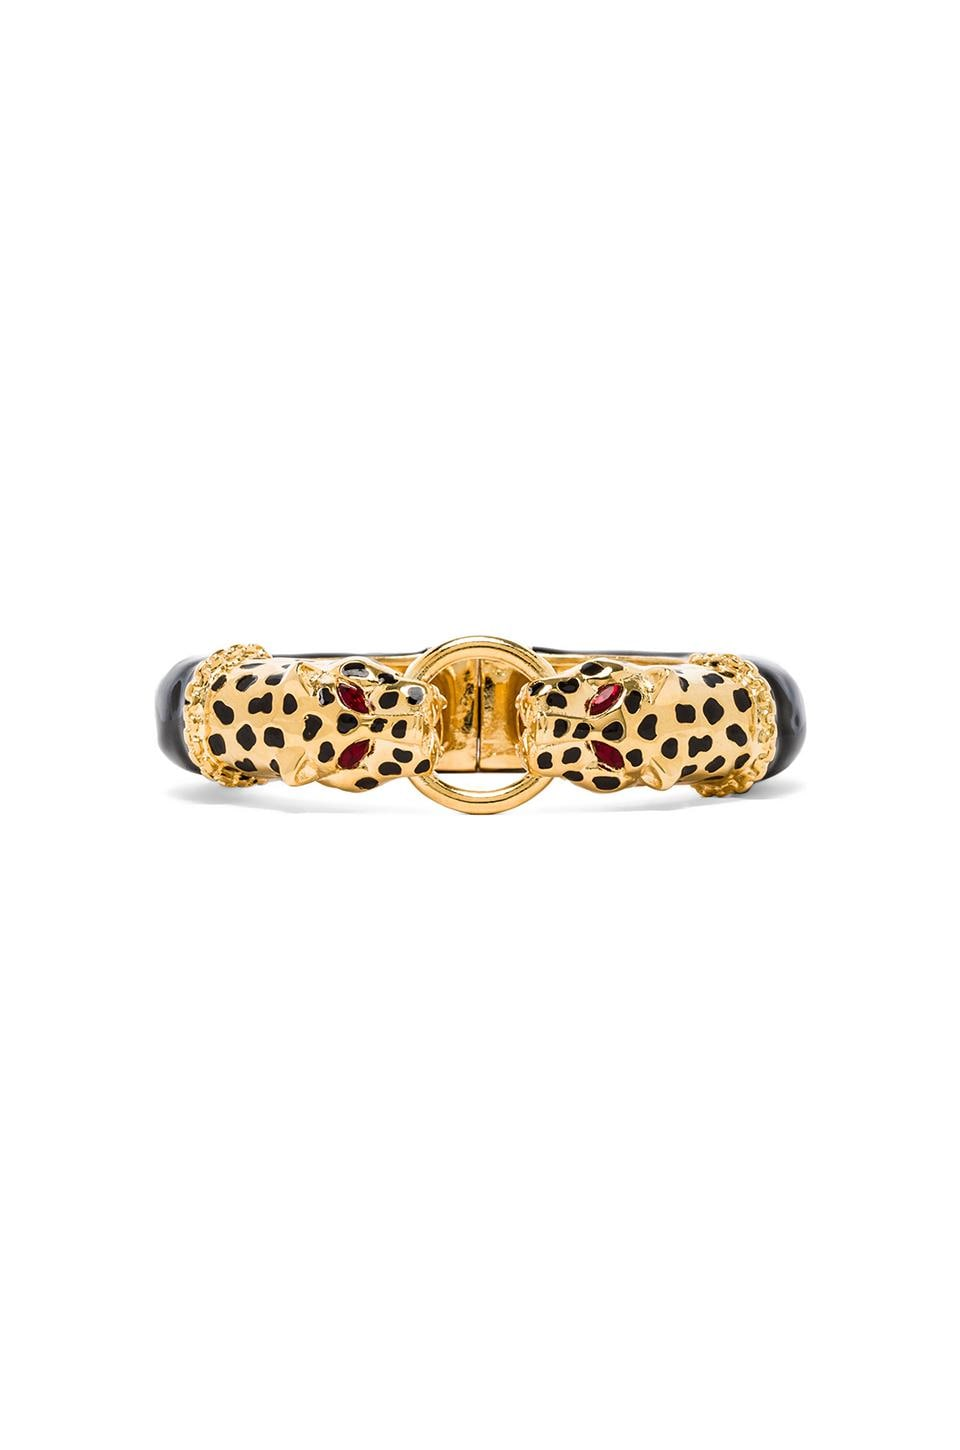 Kenneth Jay Lane Double Leopard Hinged Bracelet in Black